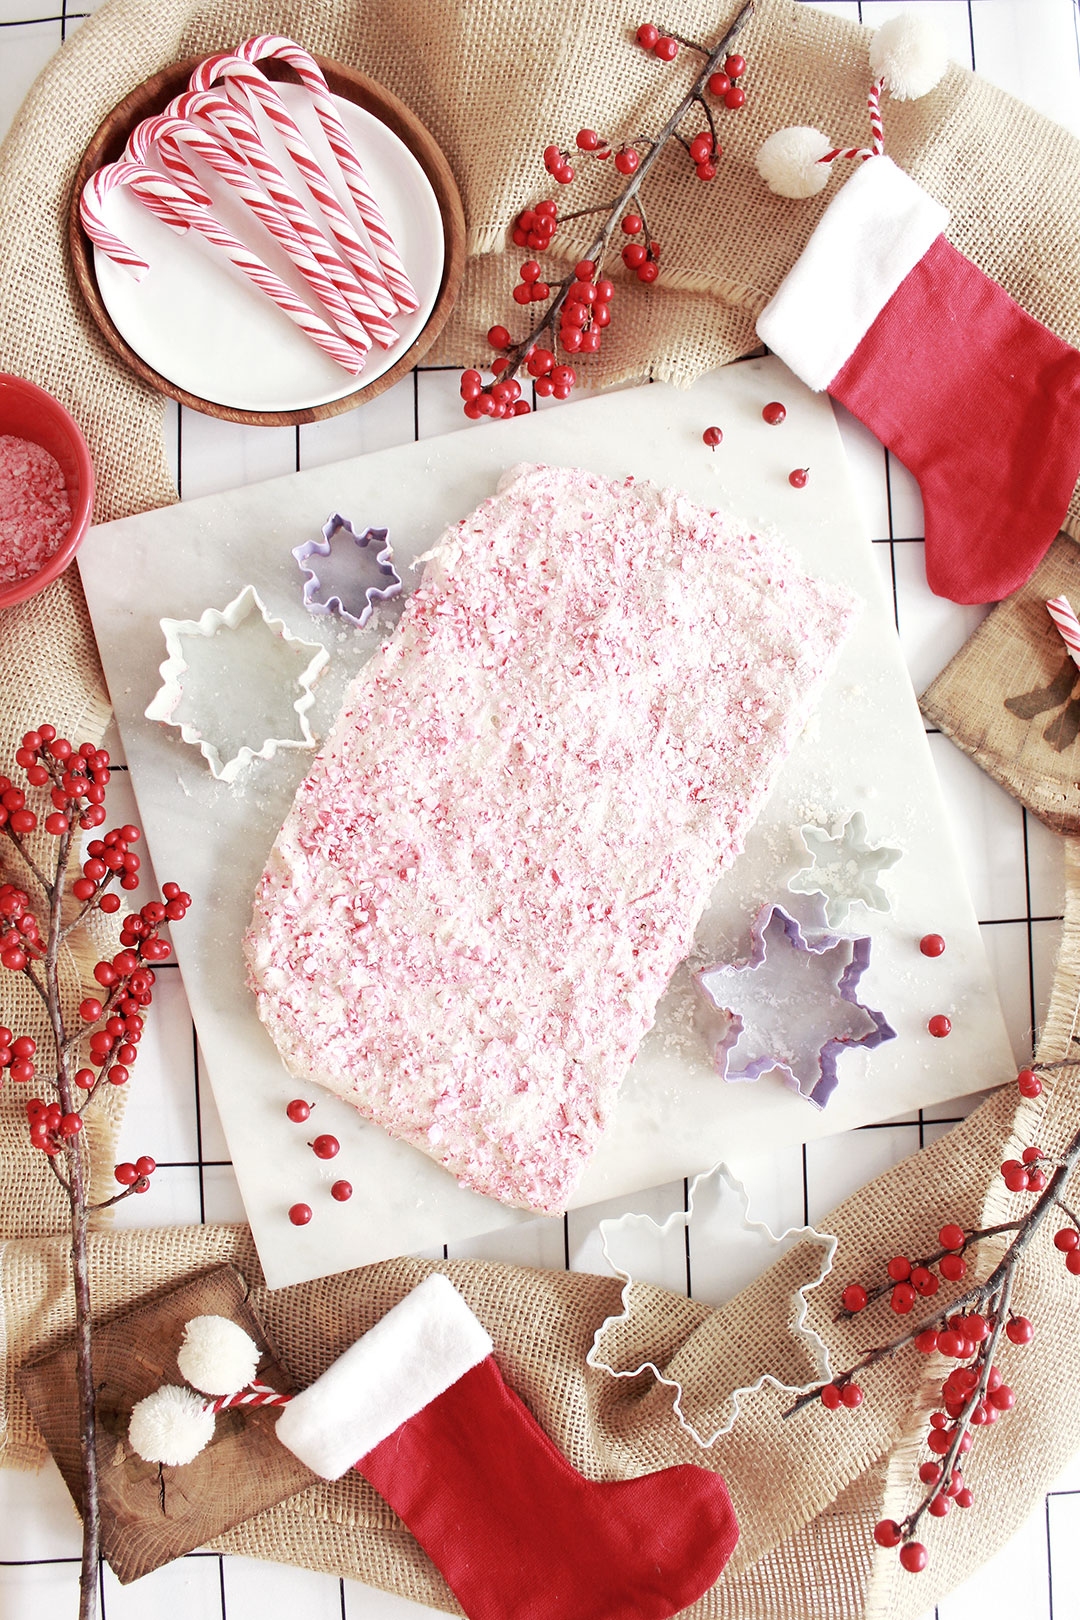 STEP 1 - To create the marshmallows:Grease the baking sheet and generously dust powdered sugar over the top. Set aside.In a mixing bowl, sprinkle the gelatin powder packets over 1/3 cups of water. Let it soften, and set aside.In a medium saucepan, combine 1/3 cups water, 1 cup granulated sugar, 1 cup light corn syrup, and 1/4 teaspoon salt. Bring to a boil over medium-high heat for about a minute, and then turn off.Take the saucepan mixture and slowly pour into the mixing bowl with gelatin while blending on the lowest speed. Slowly increase the speed to high for about ten minutes. The mixture should go from clear to white, and get increasingly thick and sticky.Add 1 teaspoon of peppermint extract and mix for another minute.Randomly add drops of red food coloring and mix just a few times to create red swirls throughout the marshmallow mix.Wet your hands to minimize sticking, and pour the mix into the baking sheet, creating a rectangular shape.Sprinkle the crushed candy canes all over the top of the marshmallow.Set aside pan for at least two hours.